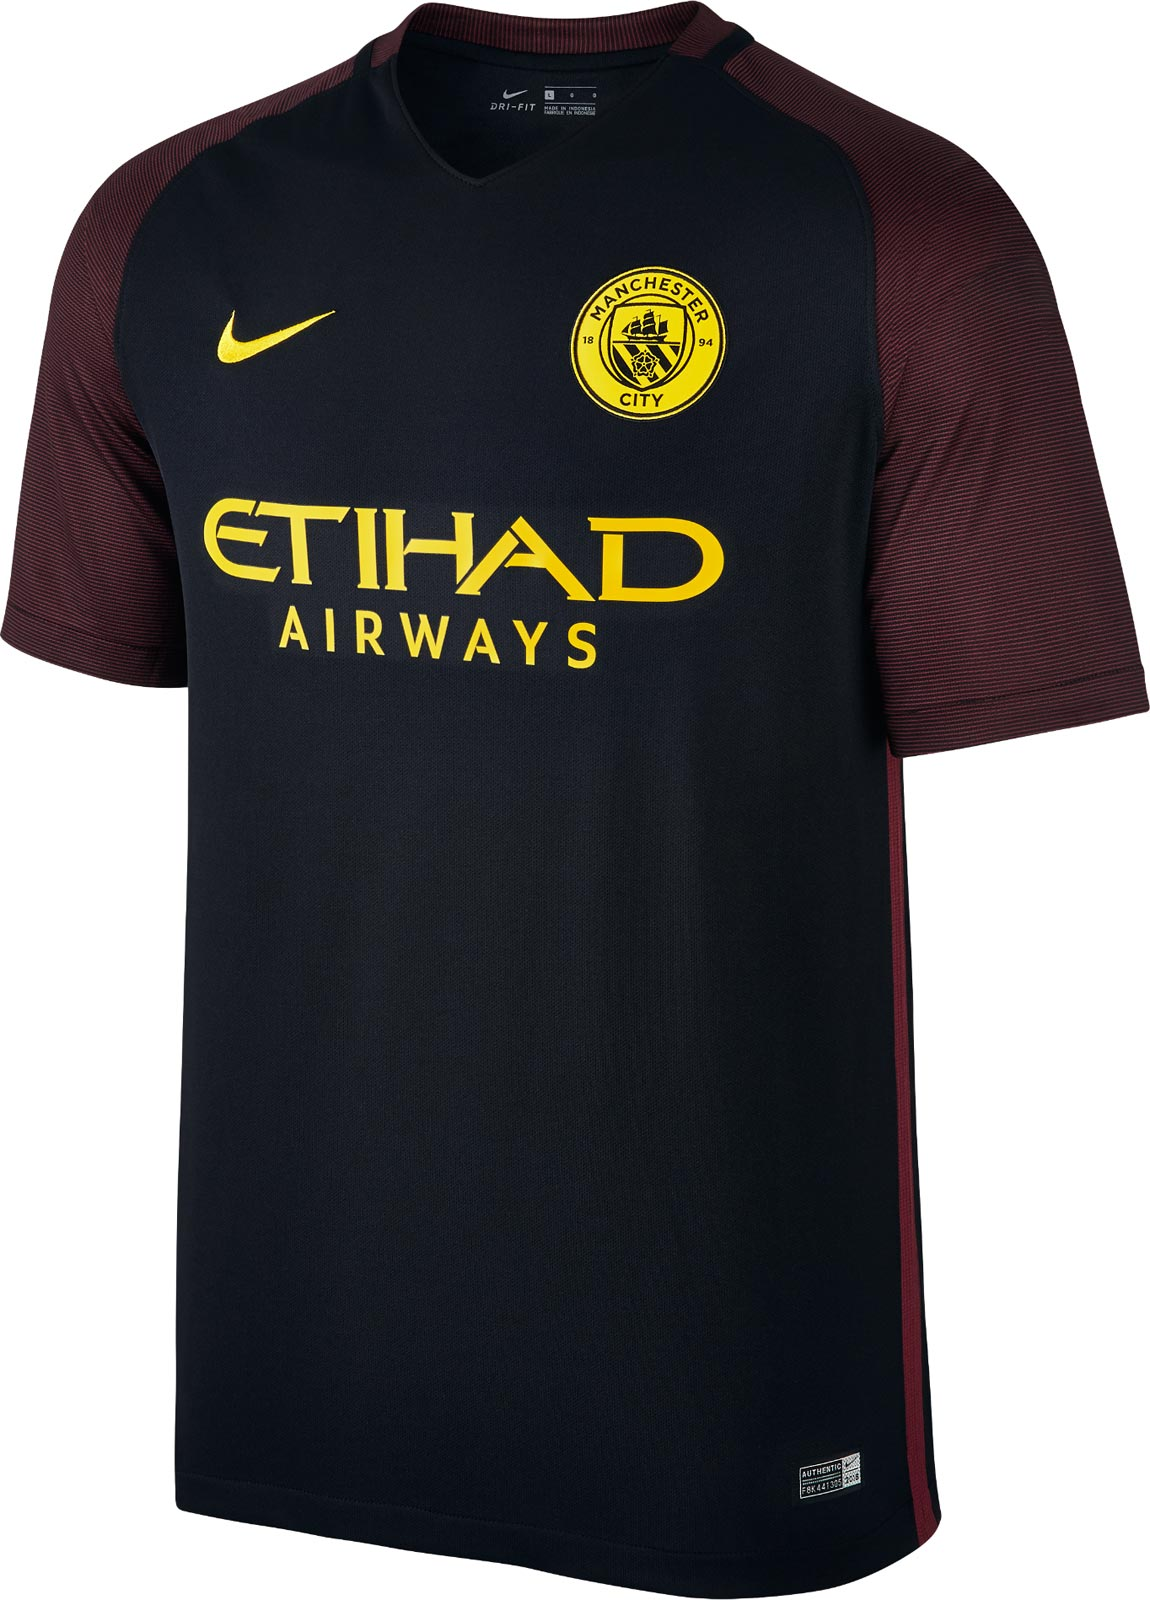 Manchester City 16-17 Away Kit Released - Footy Headlines